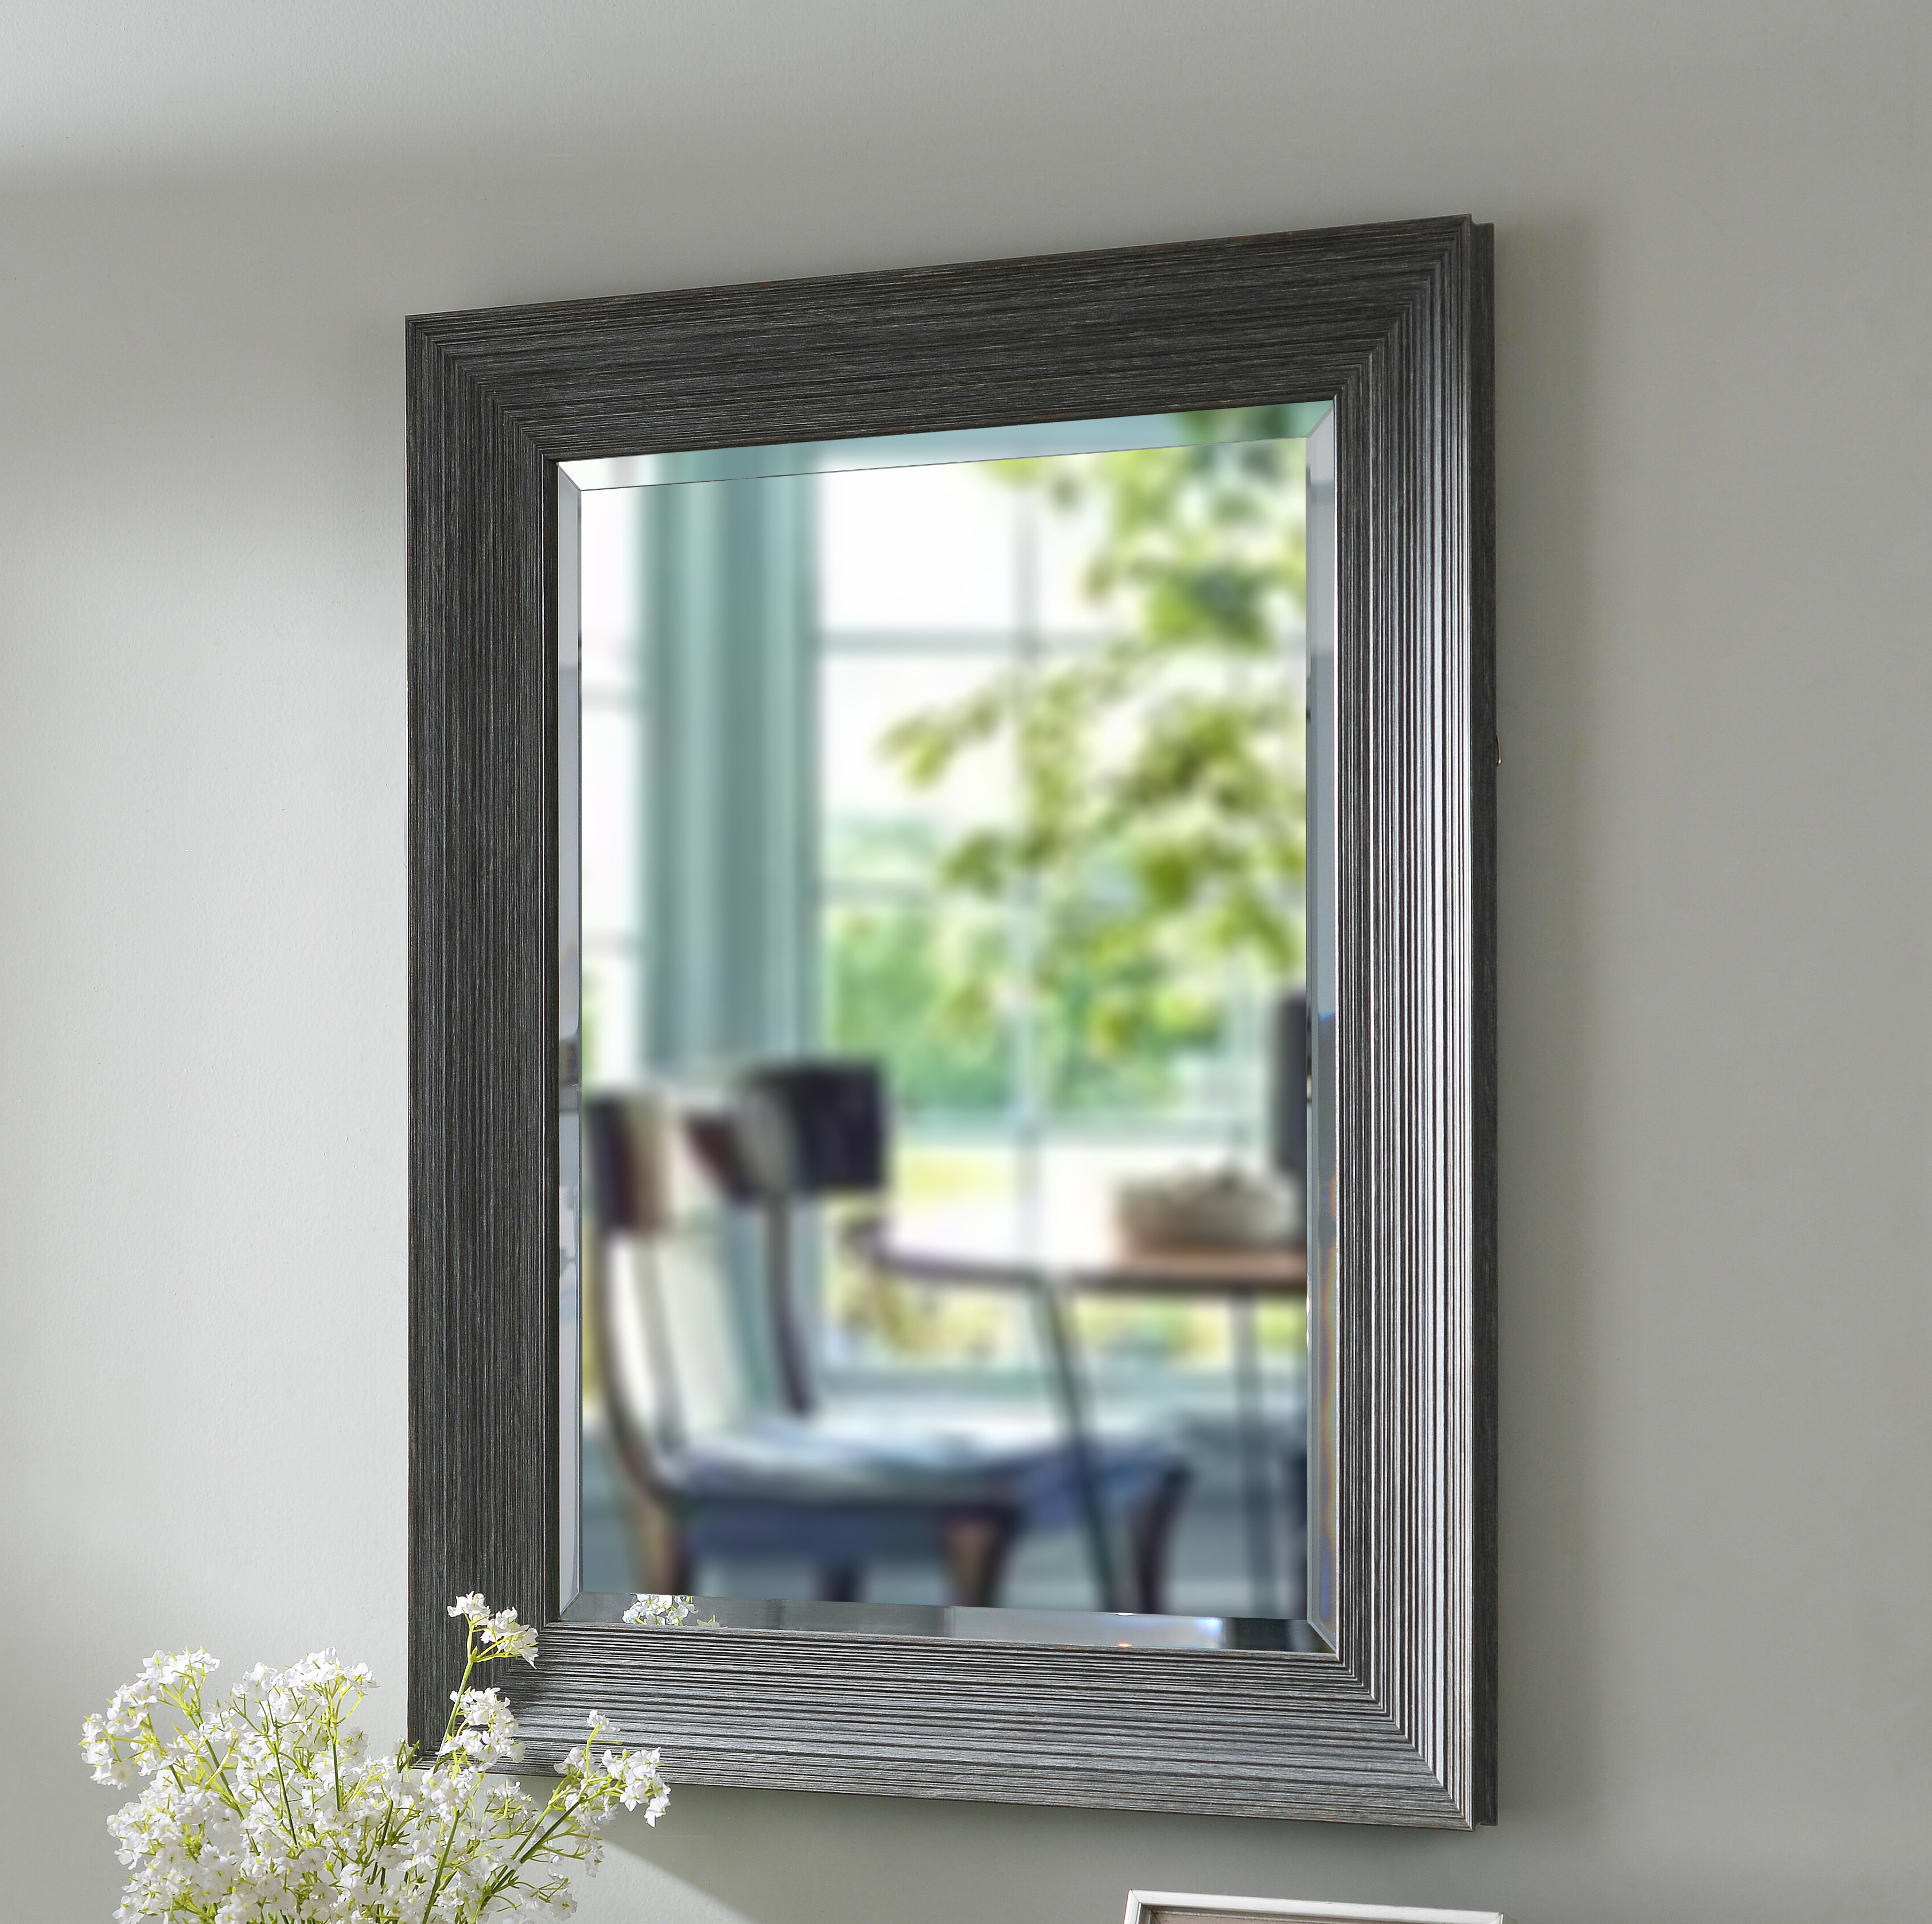 Beveled Wall Mirrors Intended For Fashionable Schutz Beveled Wall Mirror (View 5 of 20)